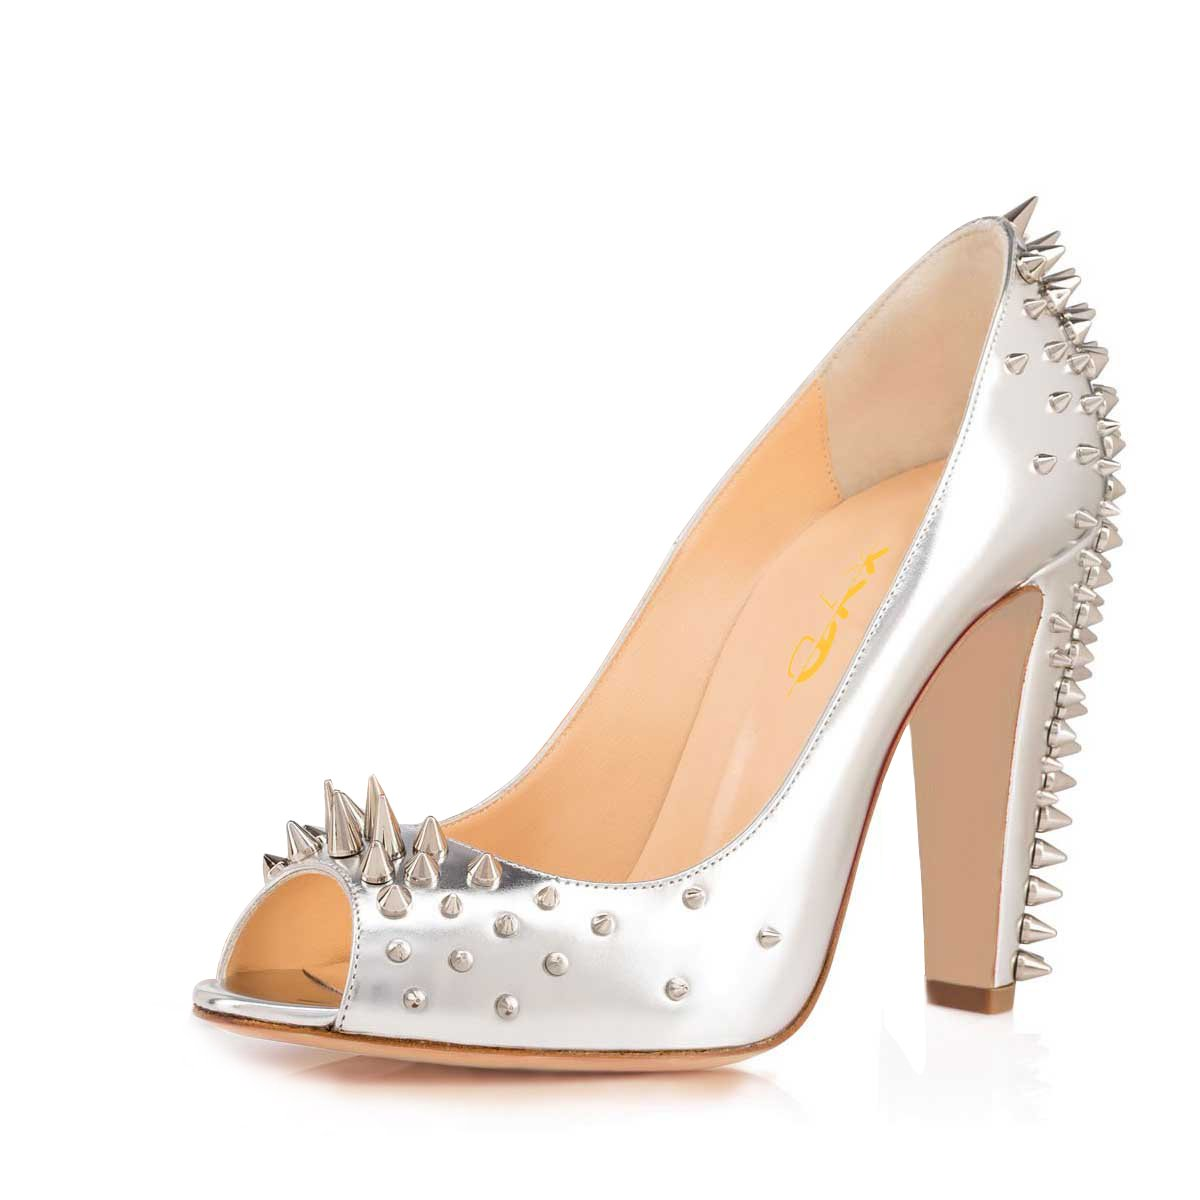 XYD Evening Superb Dress Shoes Pointed Toe T-Strap Chunky High Heel Studded Sandals for Women